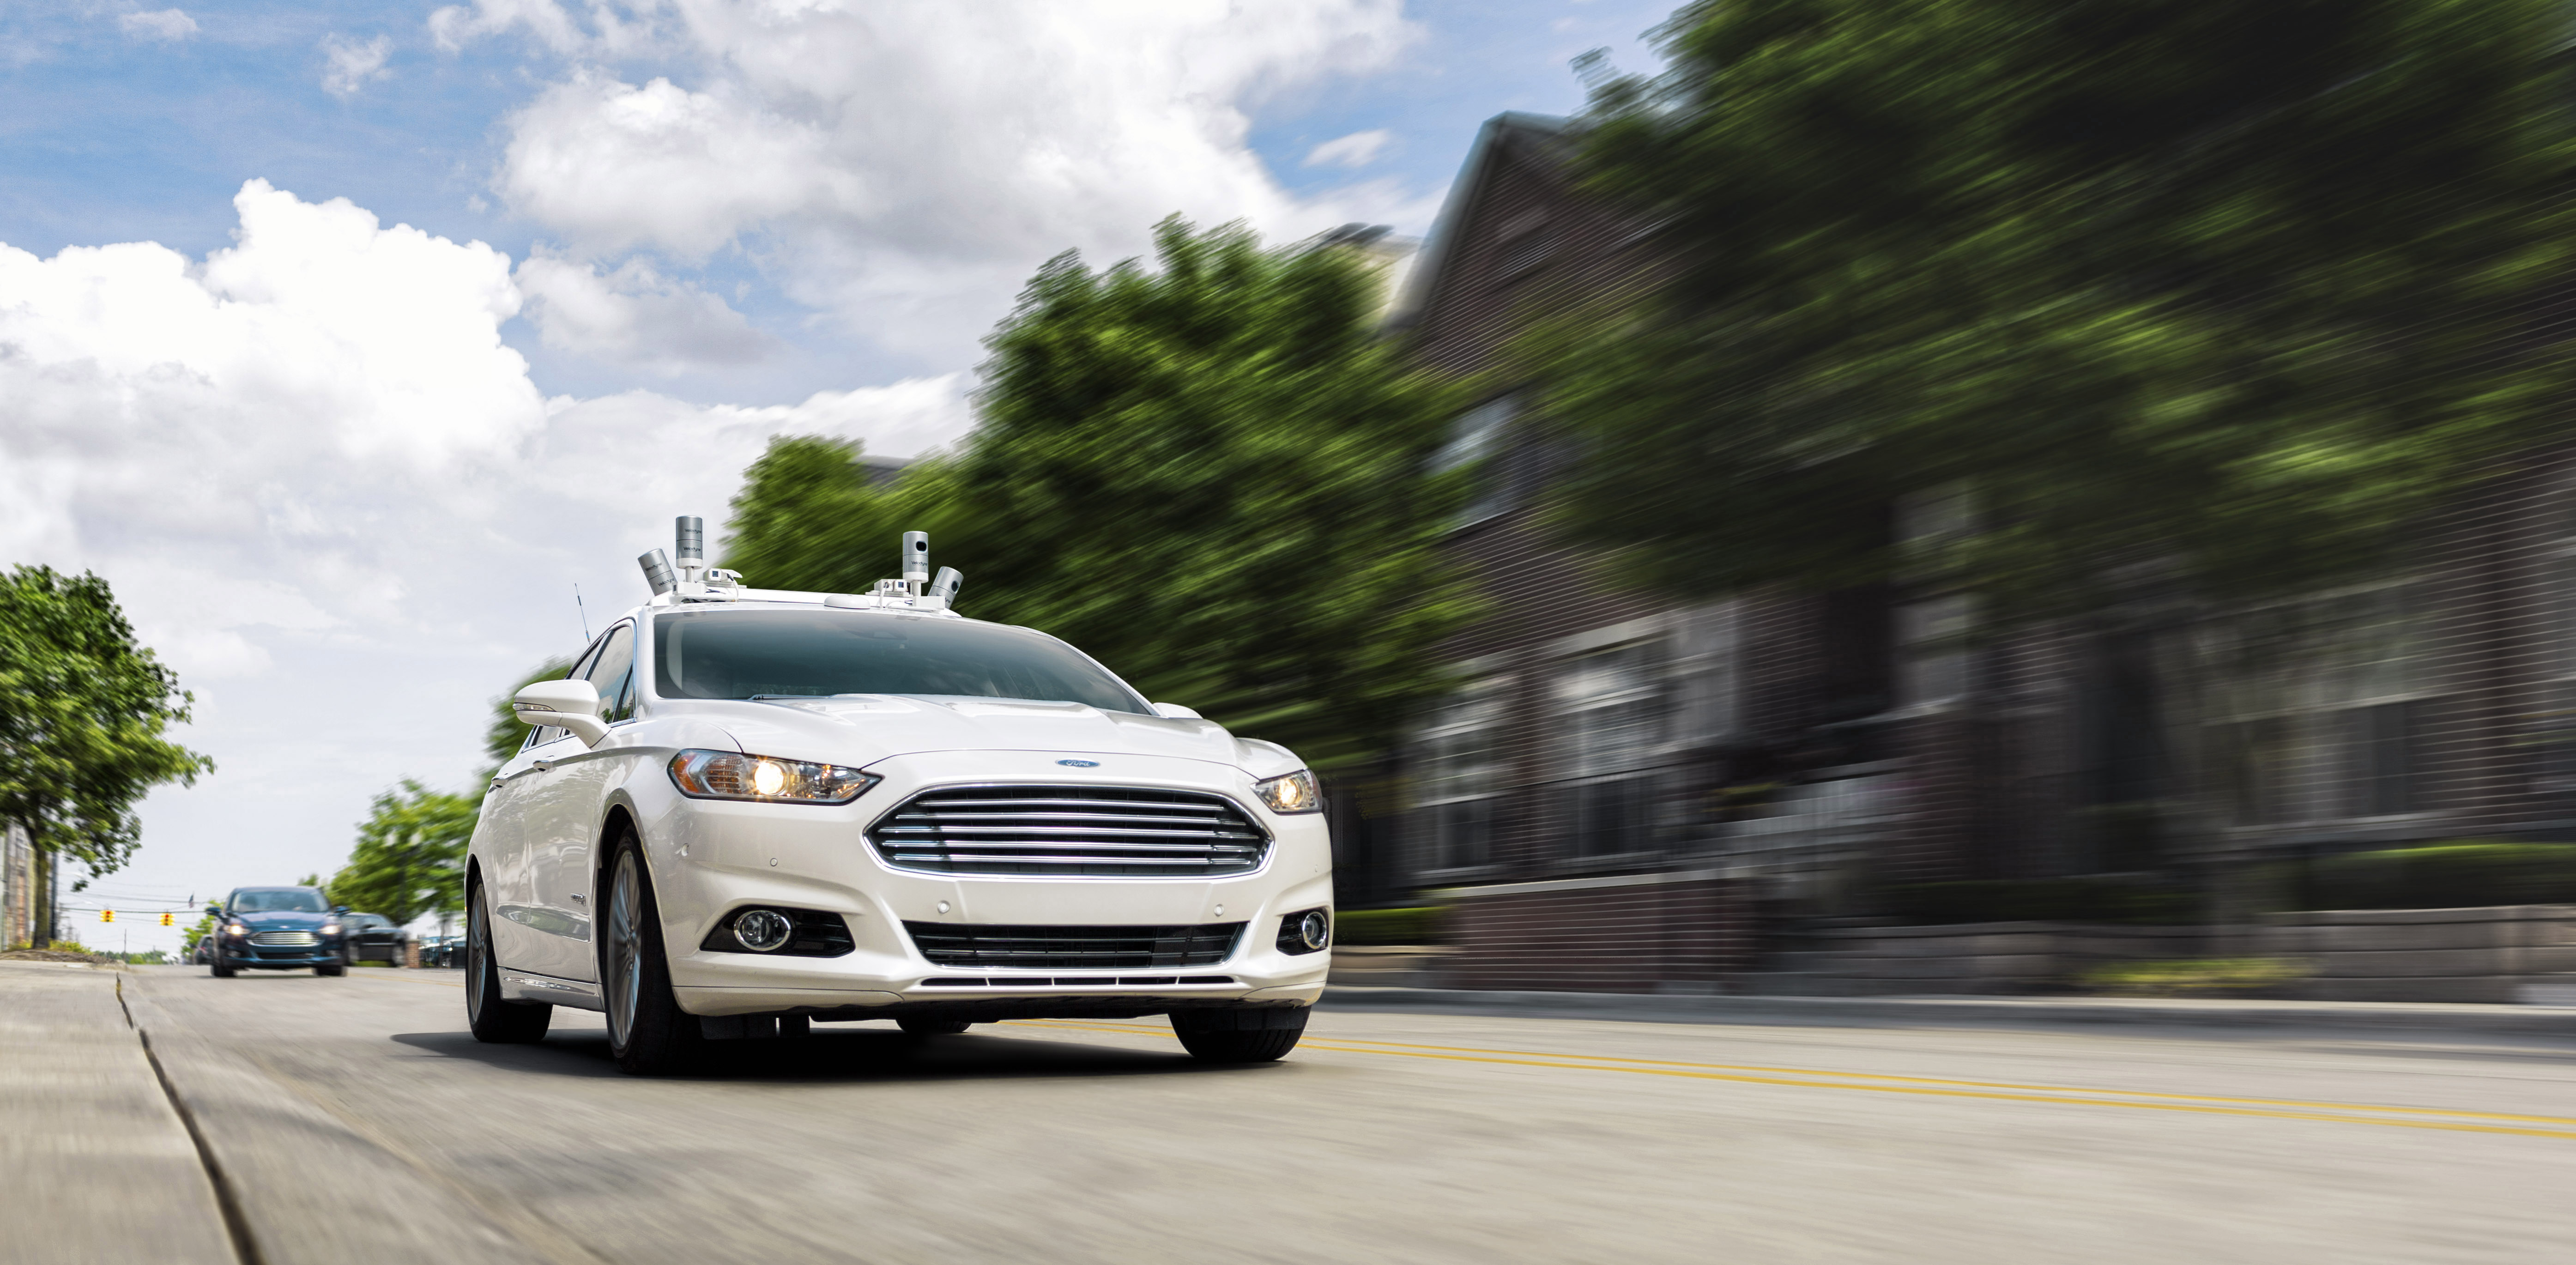 Ford Fusion: Using the telephone - Vehicles Without: Navigation System